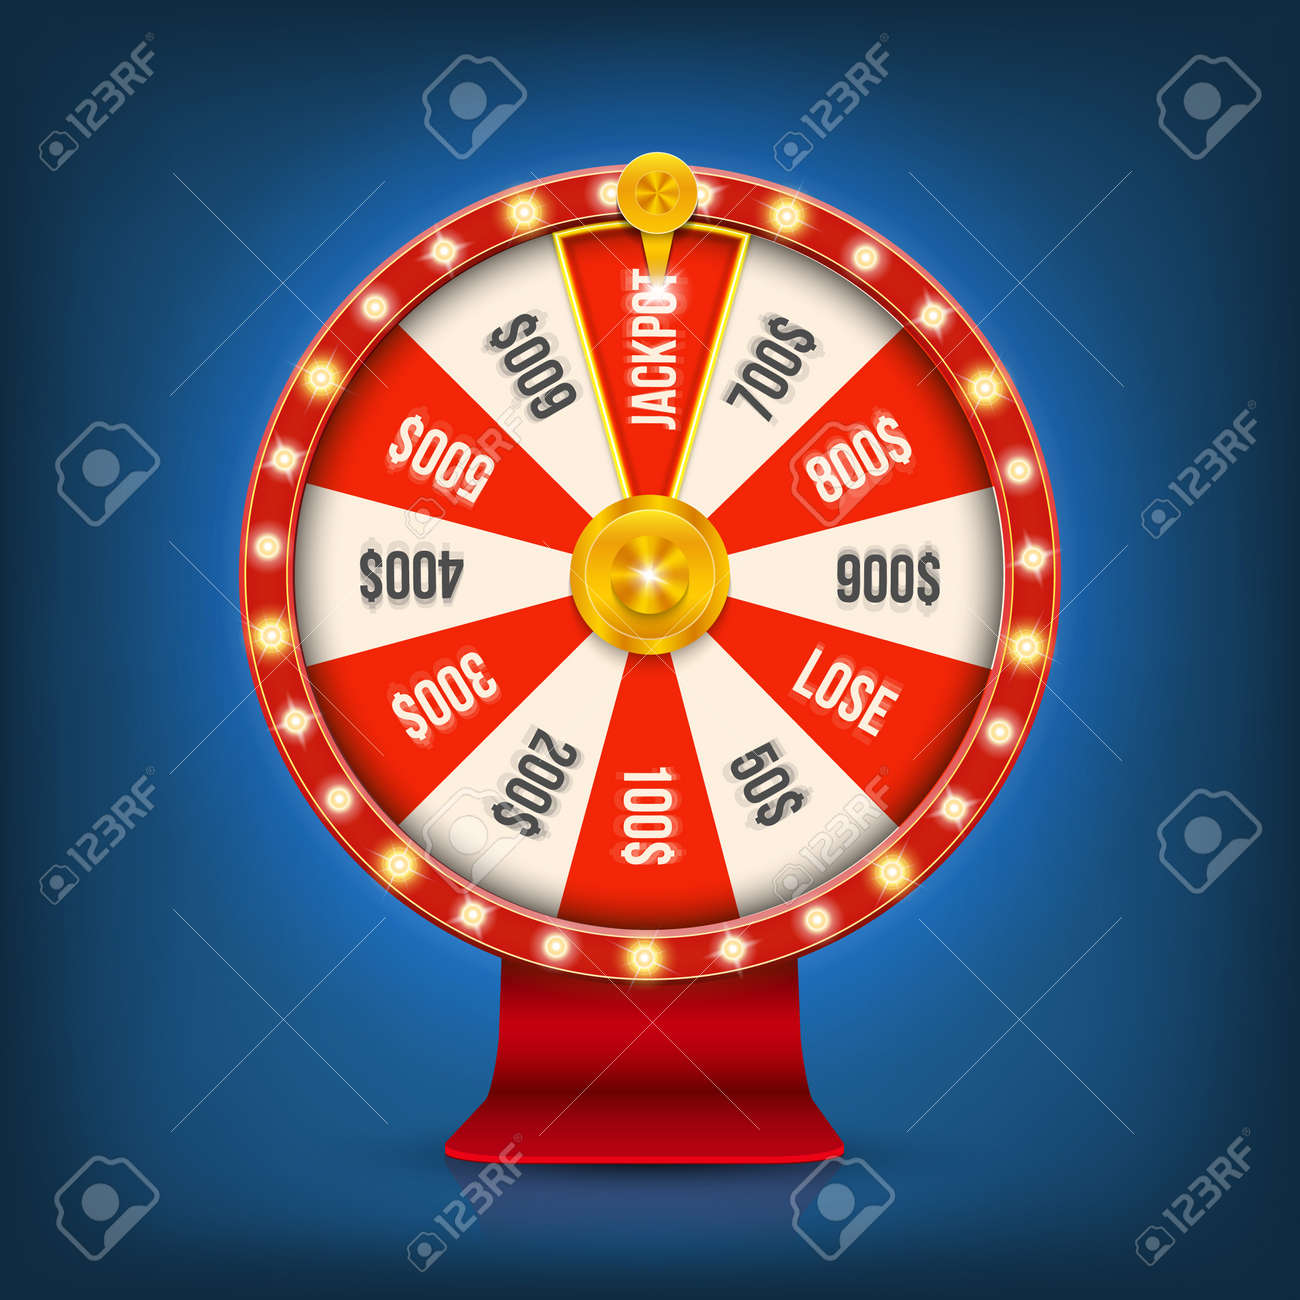 How to win lucky roulette hero call poker